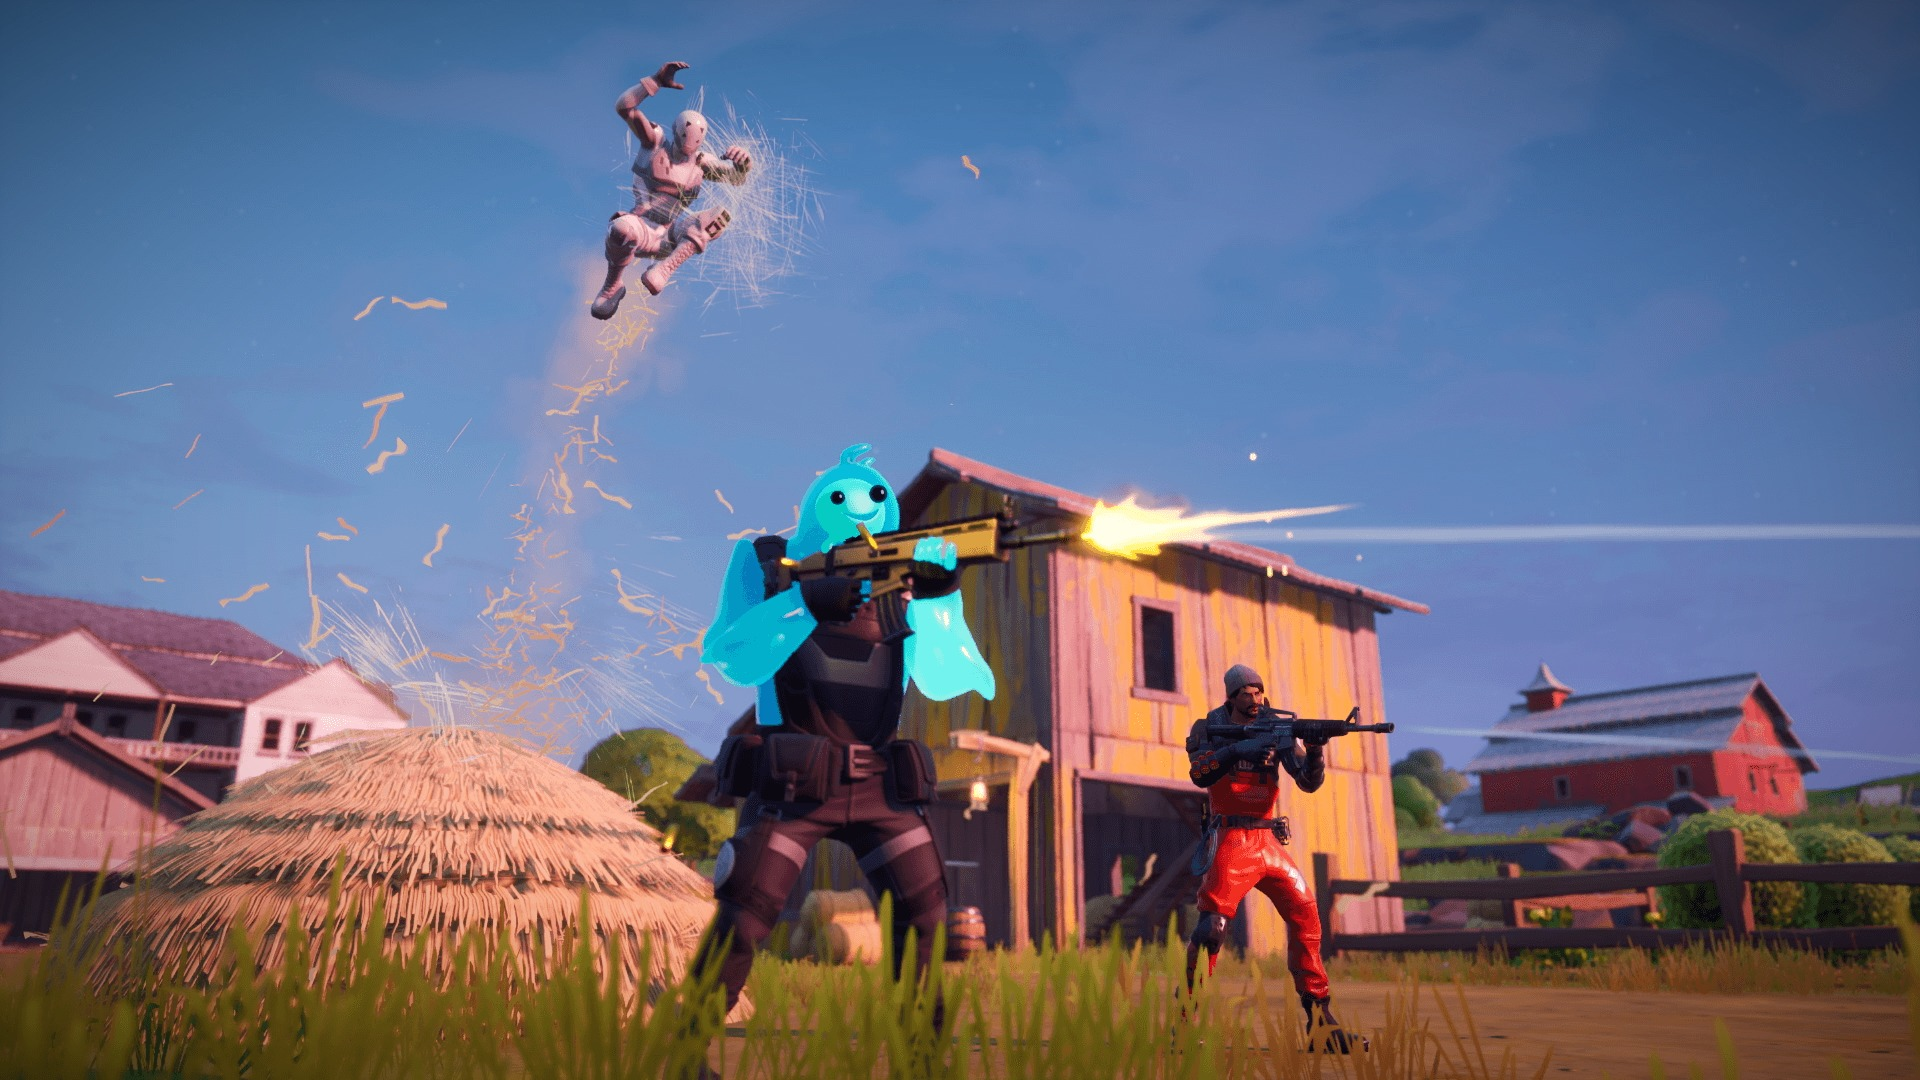 Timelapse Shows Battle Between League Of Legends And Fortnite As